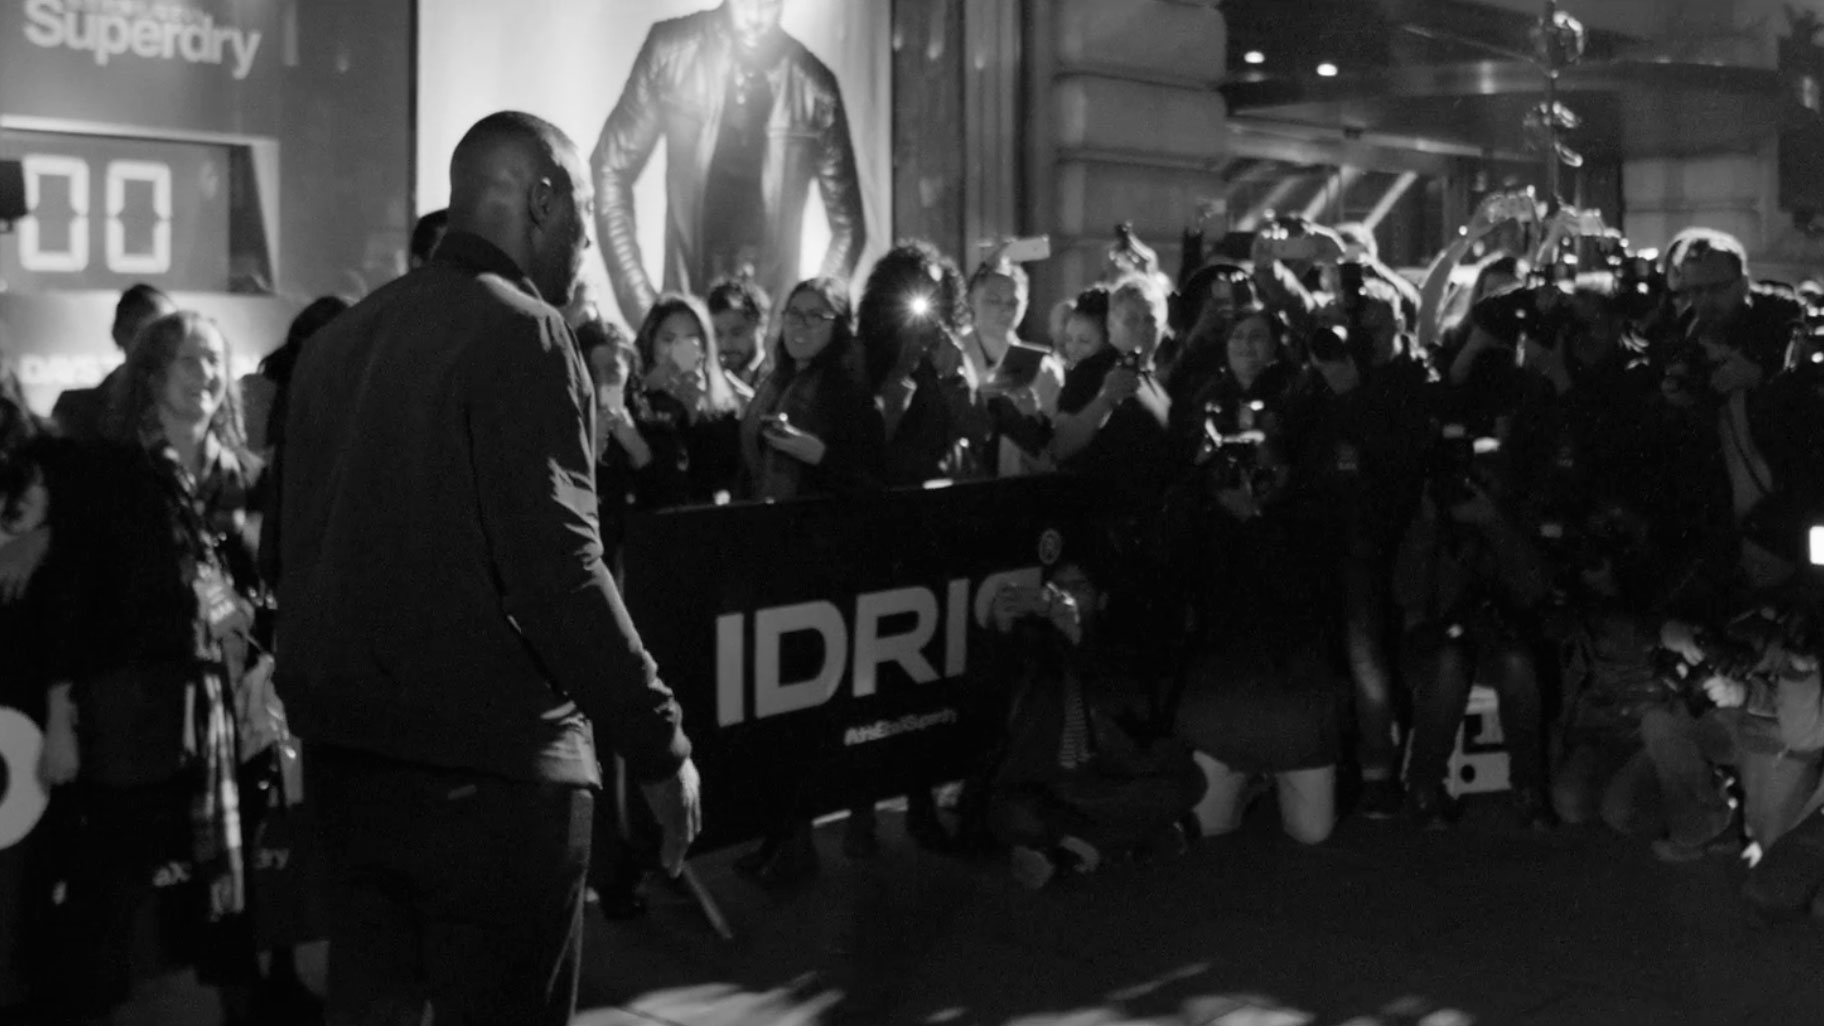 Man of the moment: Idris Elba + Superdry Launch